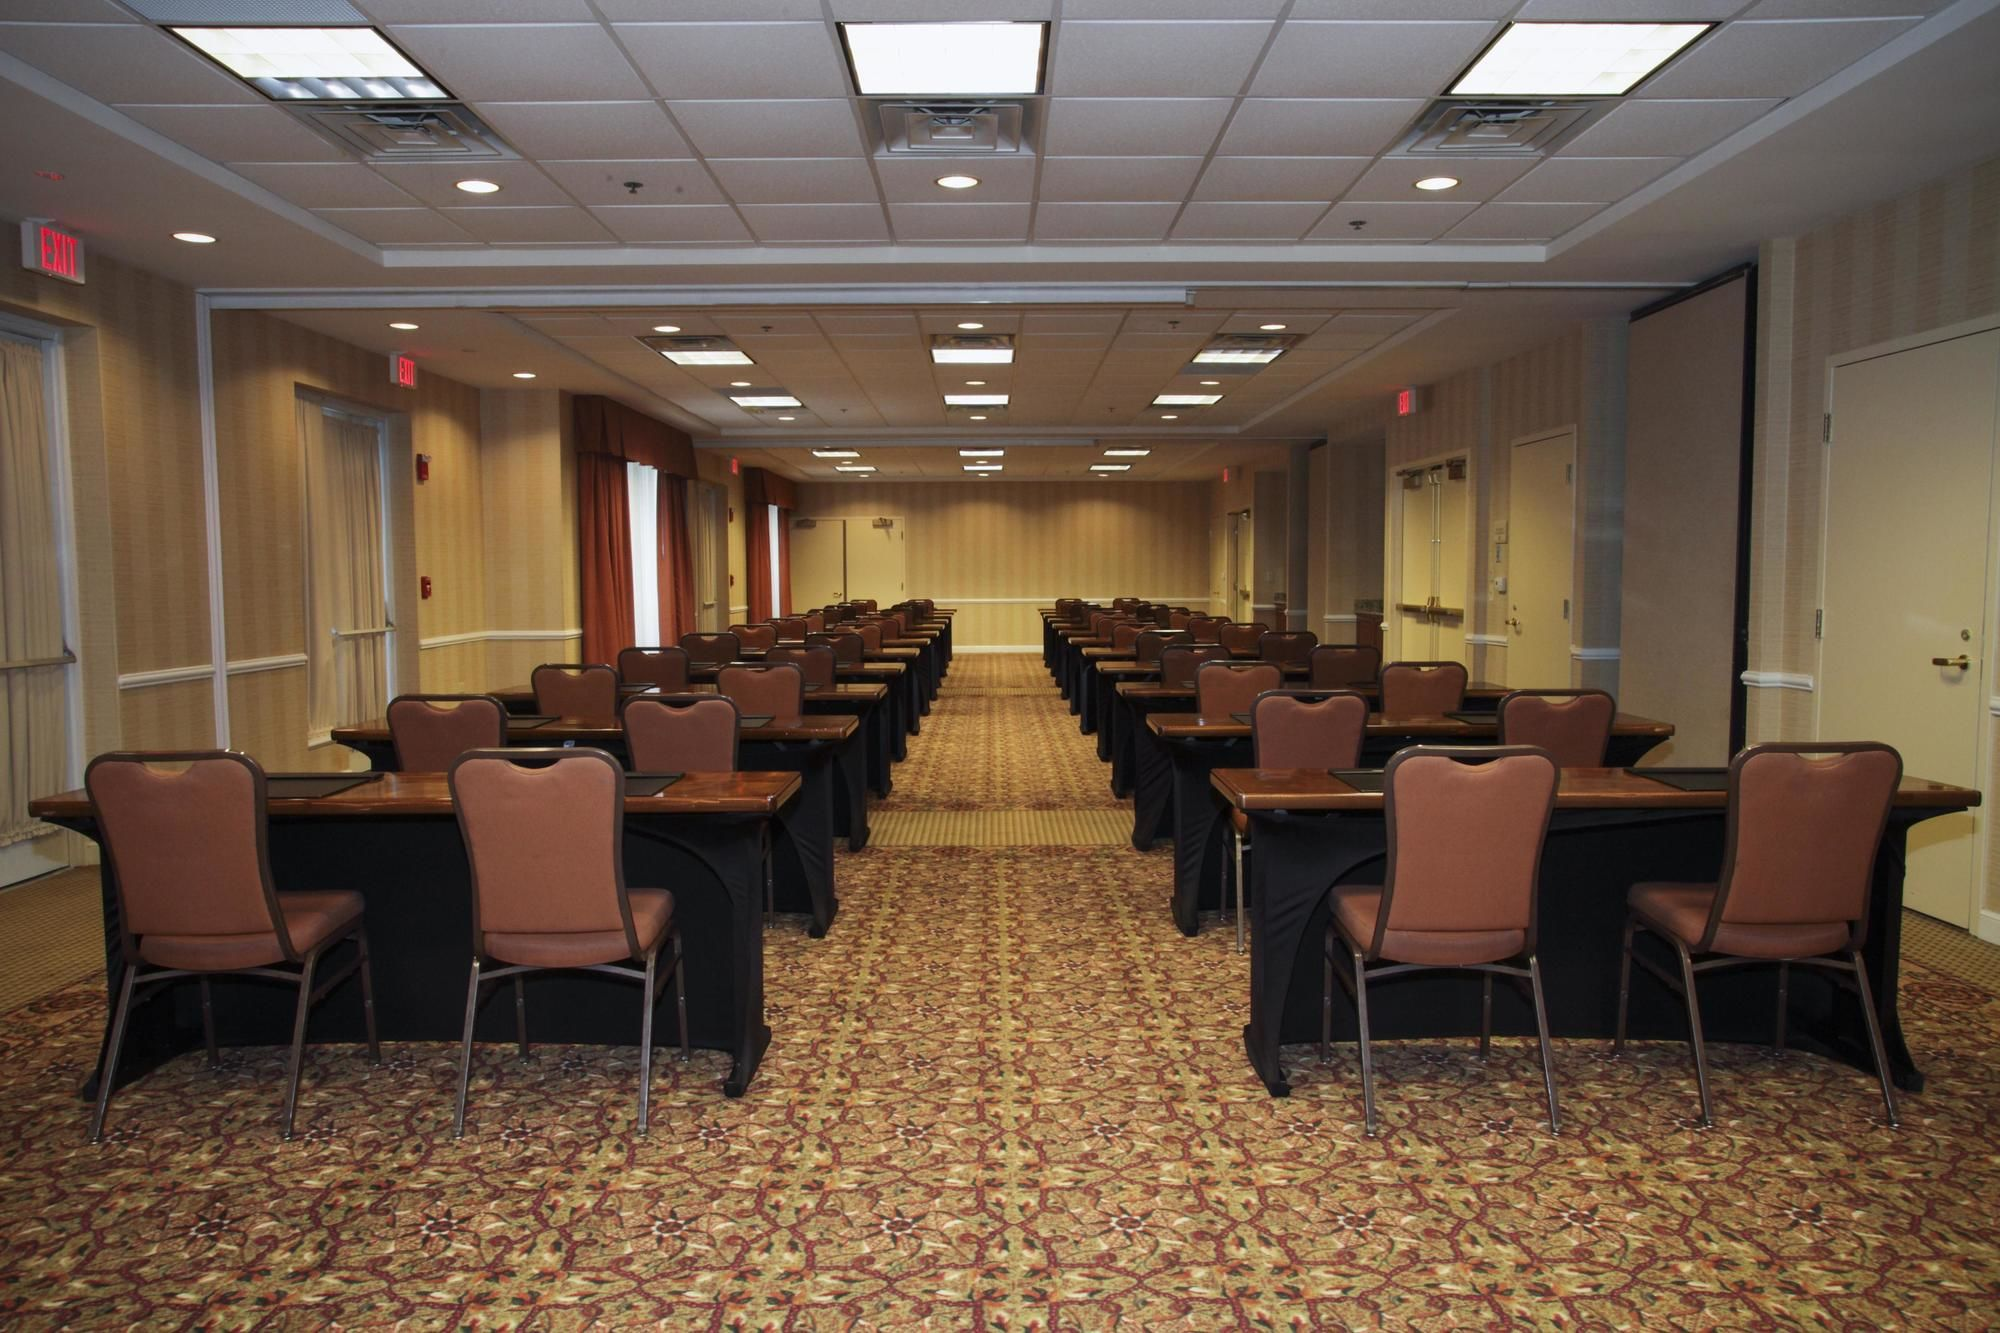 Oakbrook terrace hotel coupons for oakbrook terrace - Hilton garden inn oakbrook terrace ...